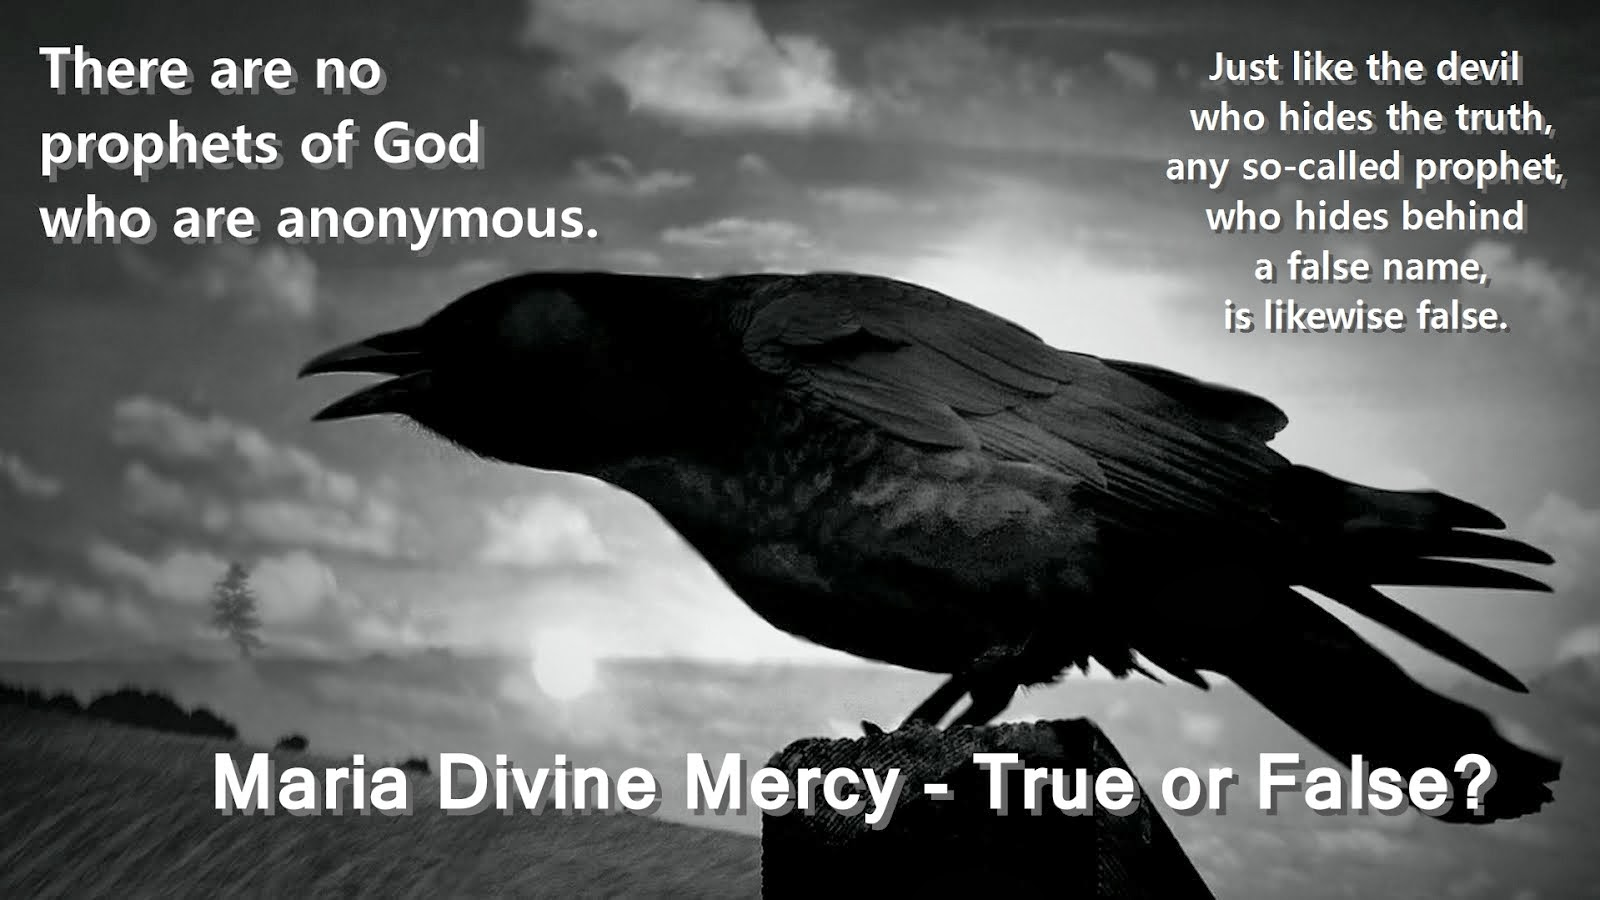 Maria Divine Mercy - True or False?